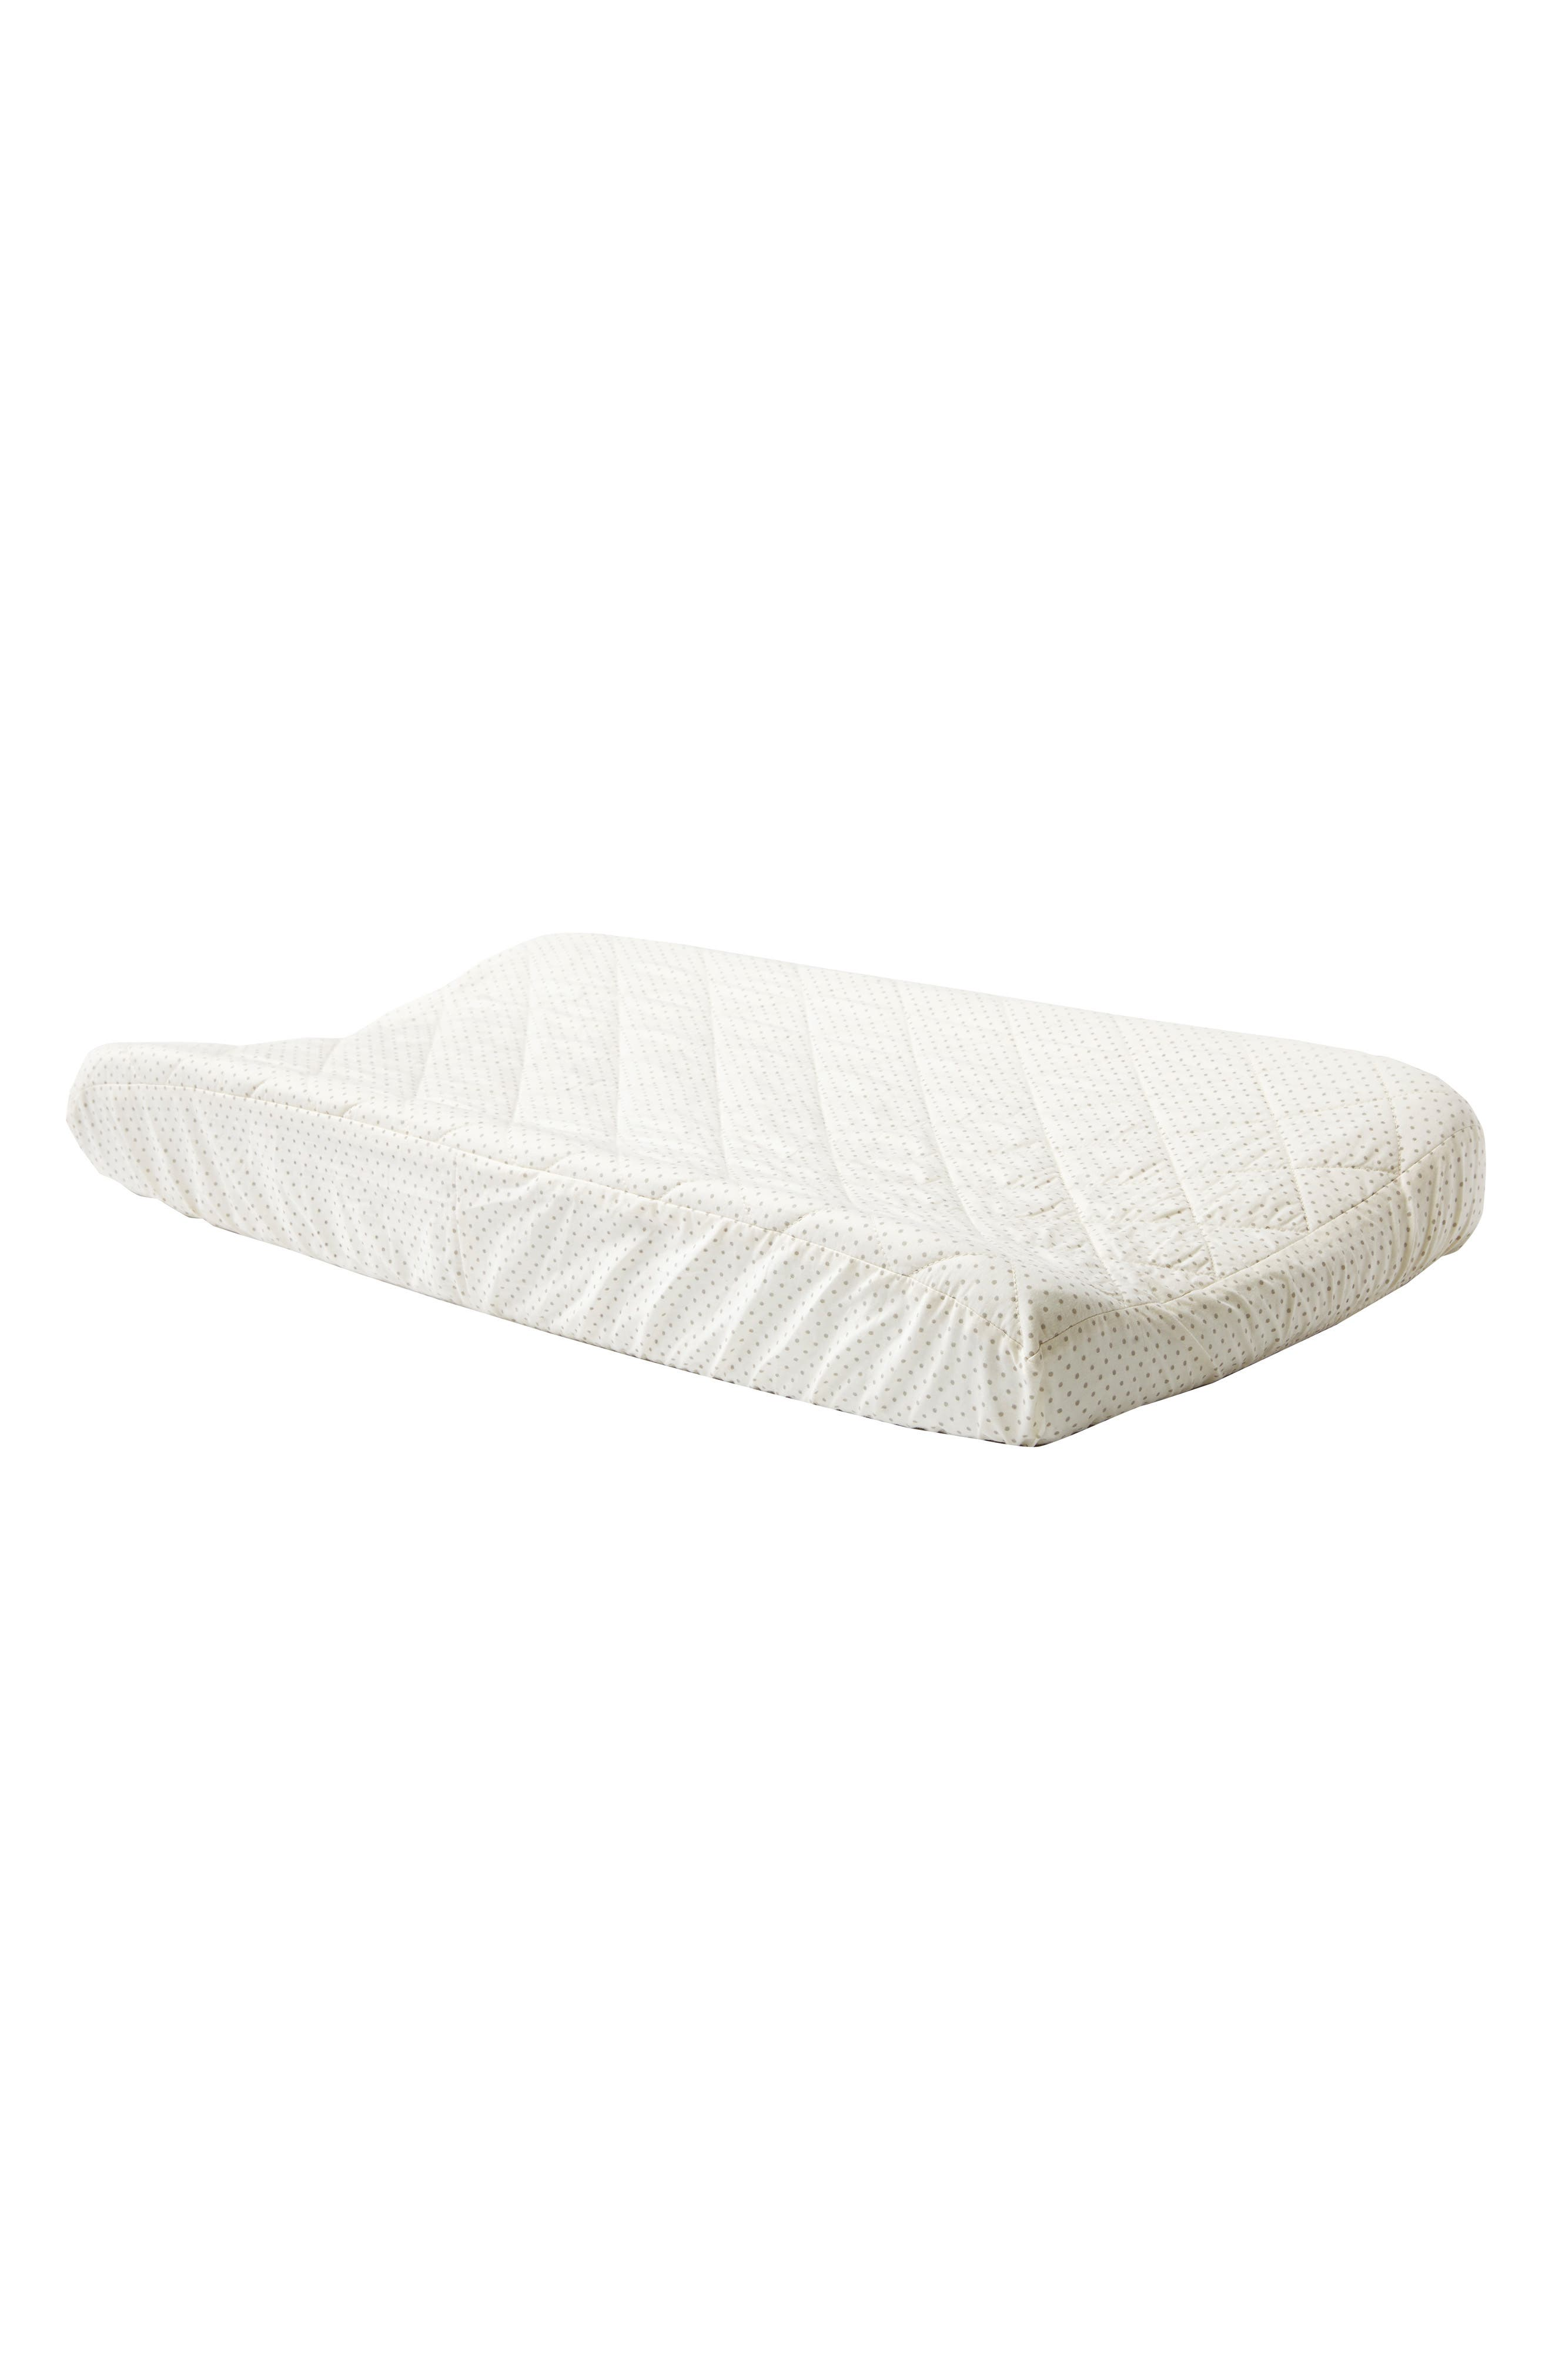 Brushed Cotton Changing Pad Cover,                             Alternate thumbnail 4, color,